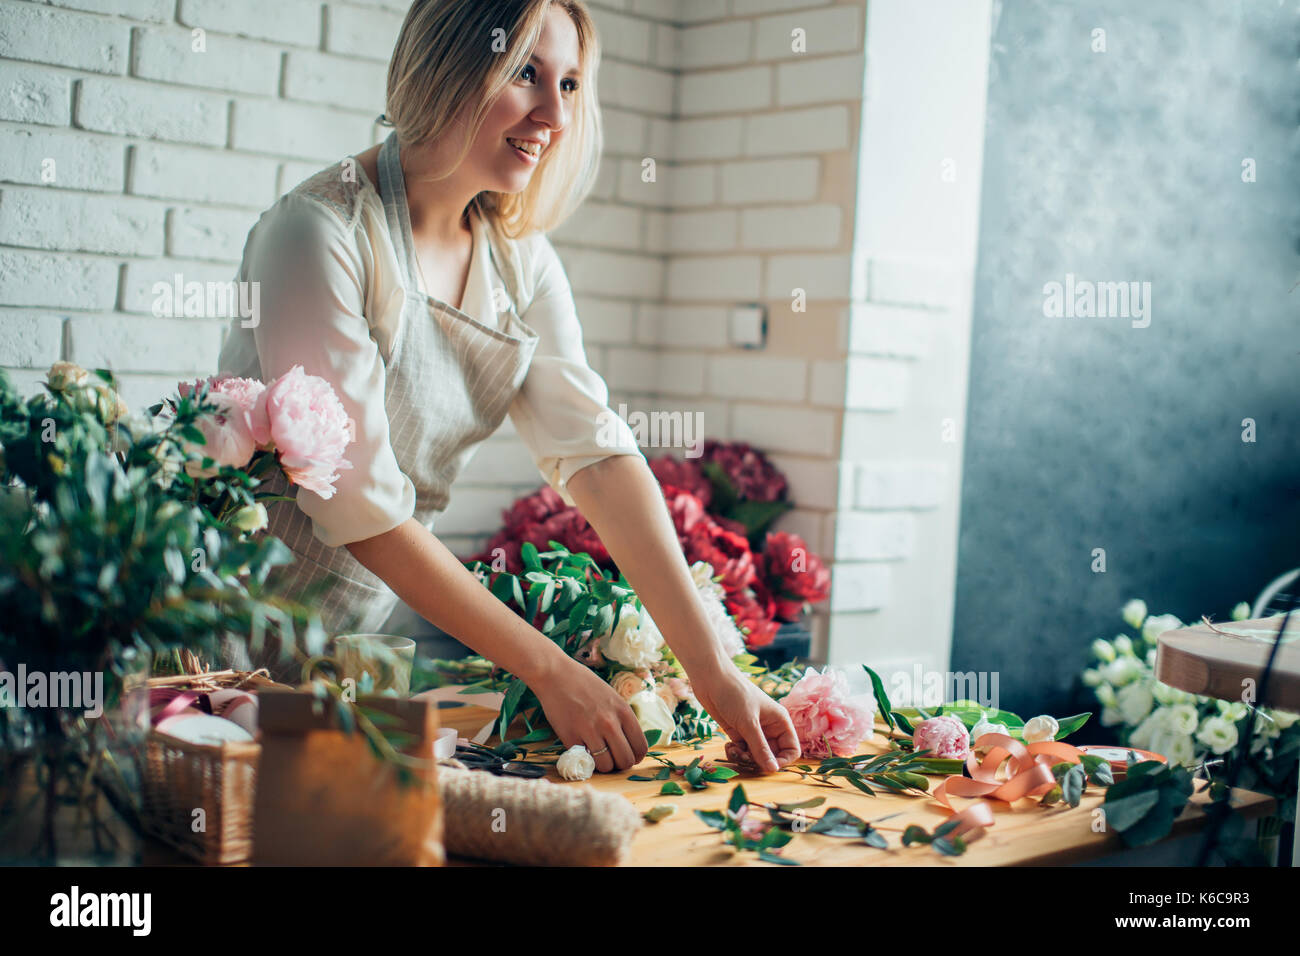 Florist workplace: woman arranging a bouquet with roses, matthiolas, ranunculus flowers and gypsophila paniculata twigs. - Stock Image